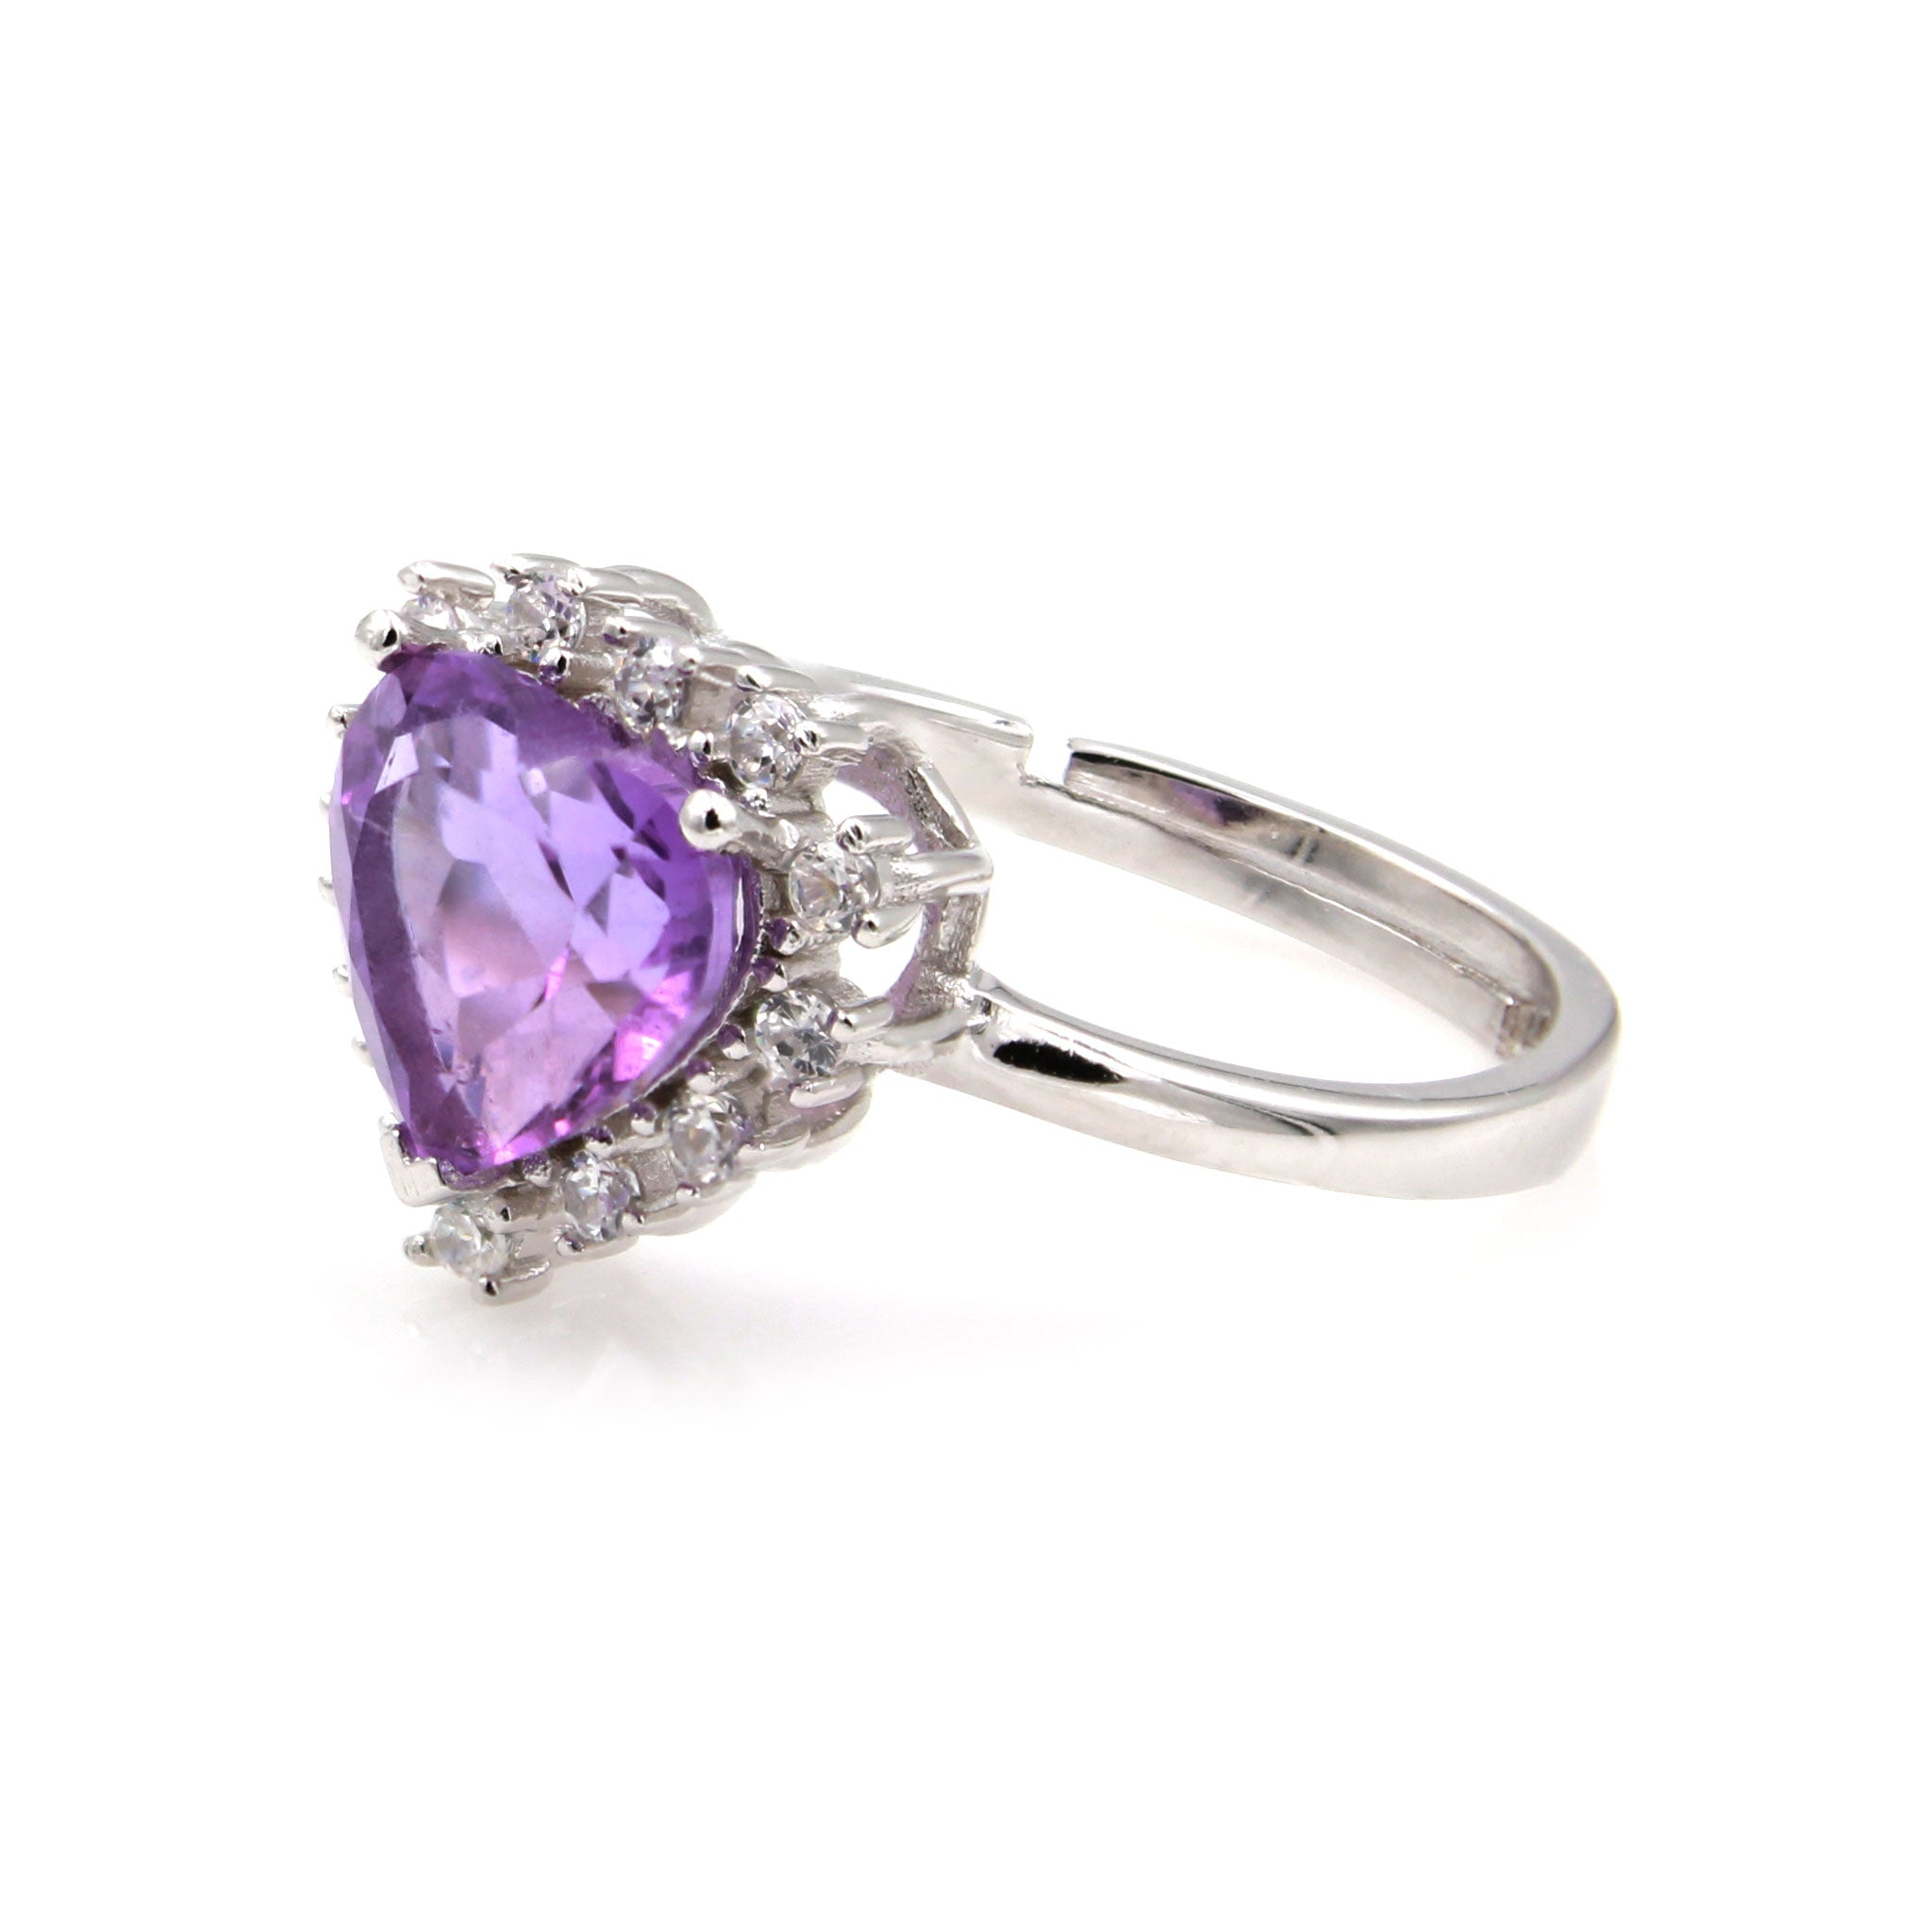 rings elegant with white diamond gold heart amethist ring free shaped diamonds amethyst of engagement and